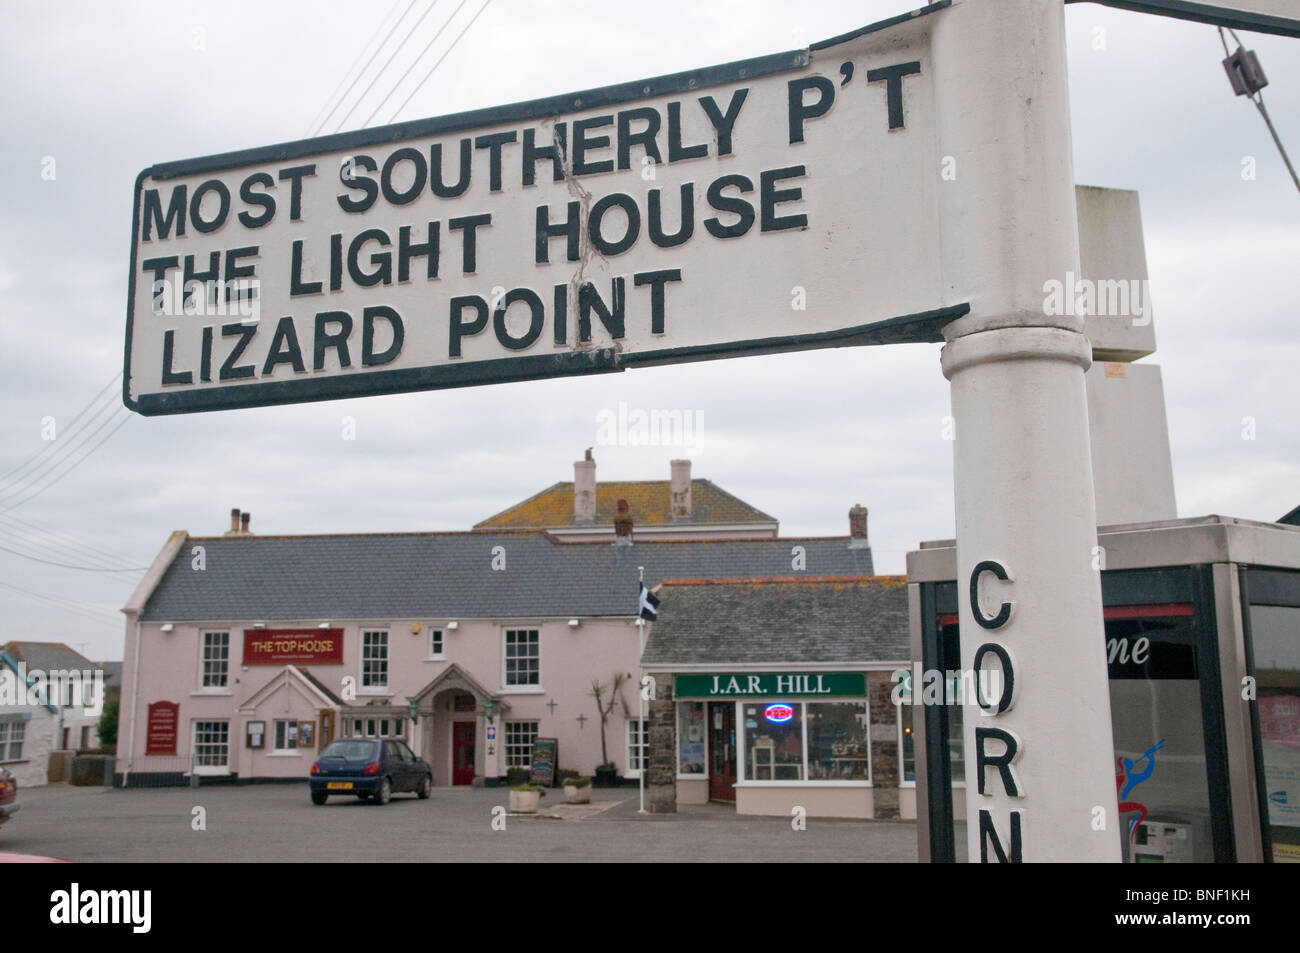 Signpost in Lizard, Cornwall, directing to Lizard Point, the UK's most southerly point, with the Top House pub - Stock Image